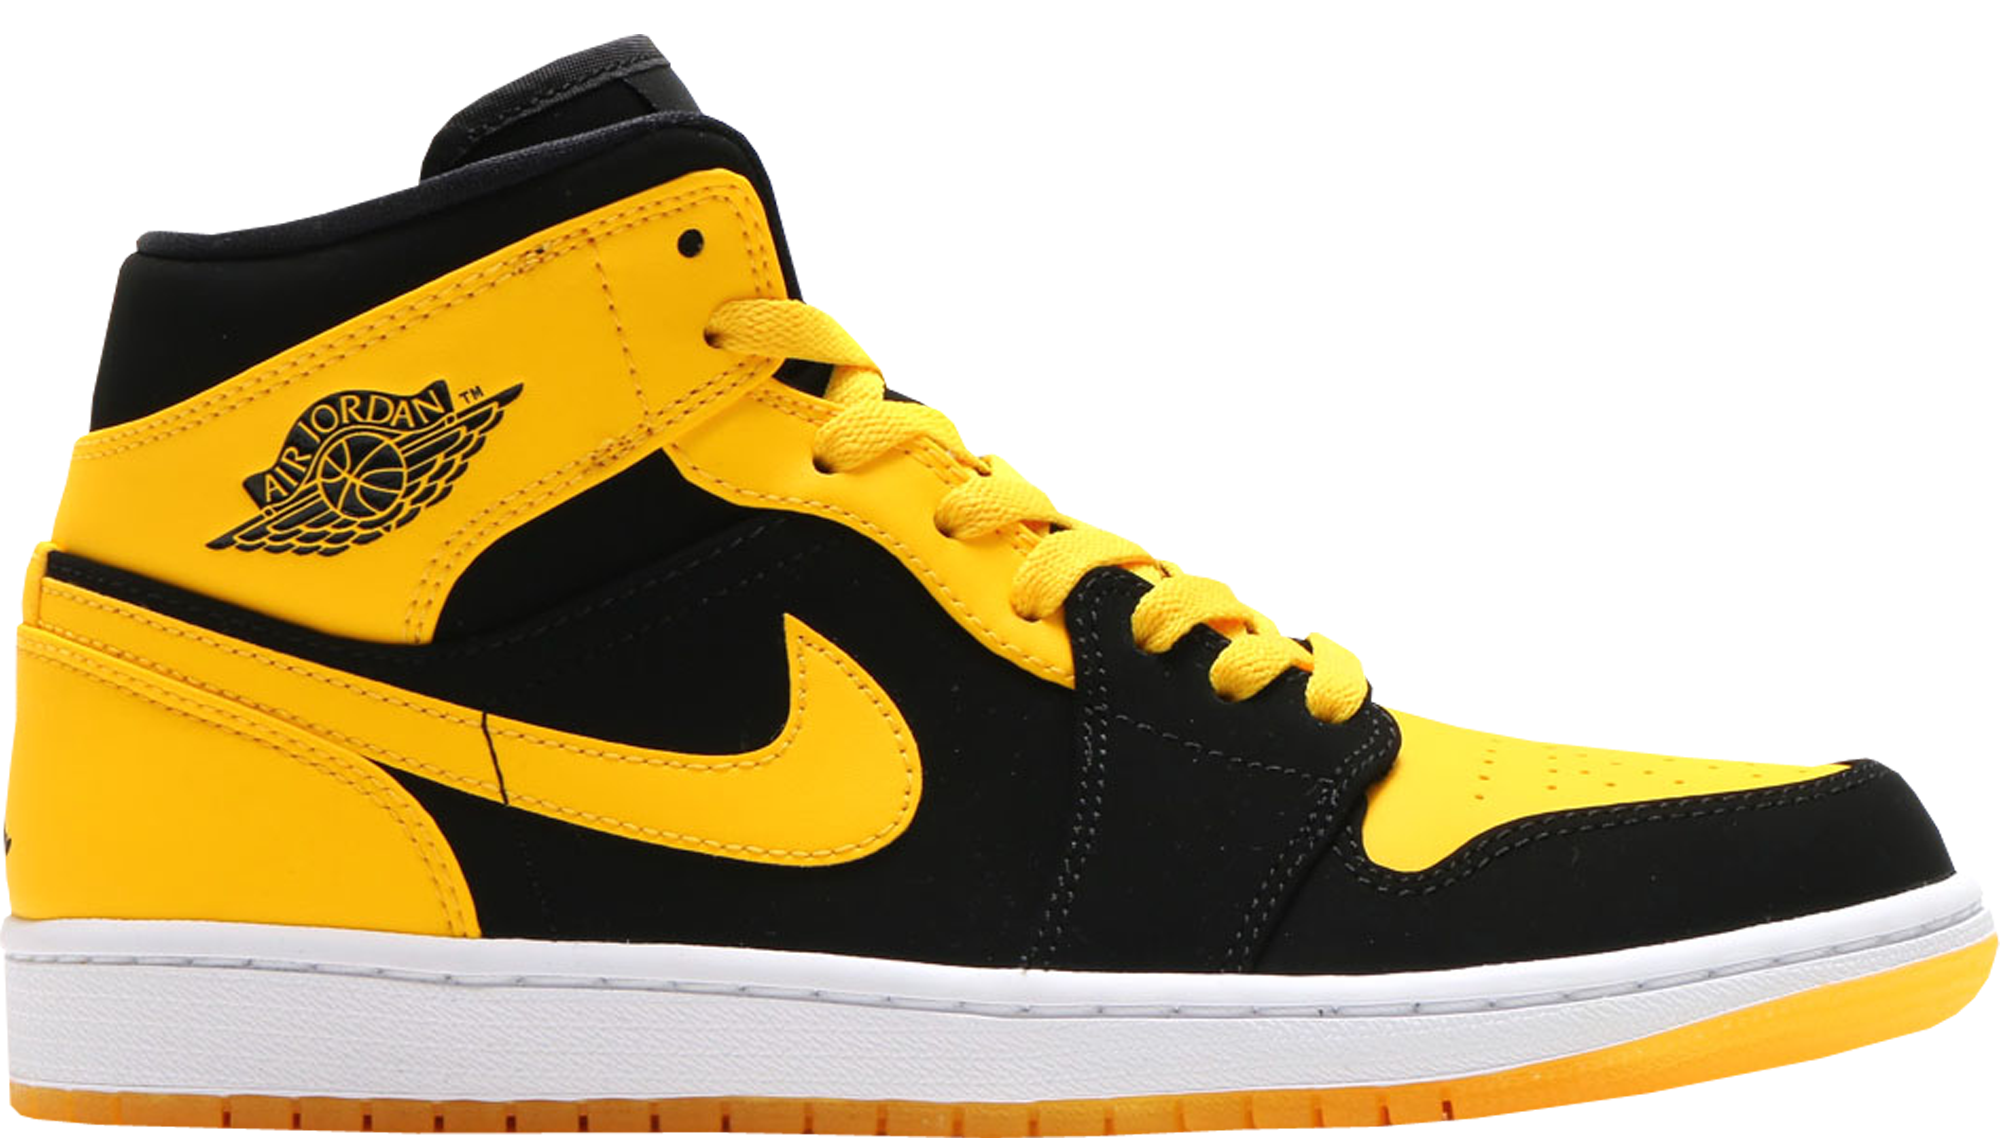 wholesale dealer bb04f a6b2a Air Jordan 1 Mid Black Varsity Maize New Love 2017 Retro